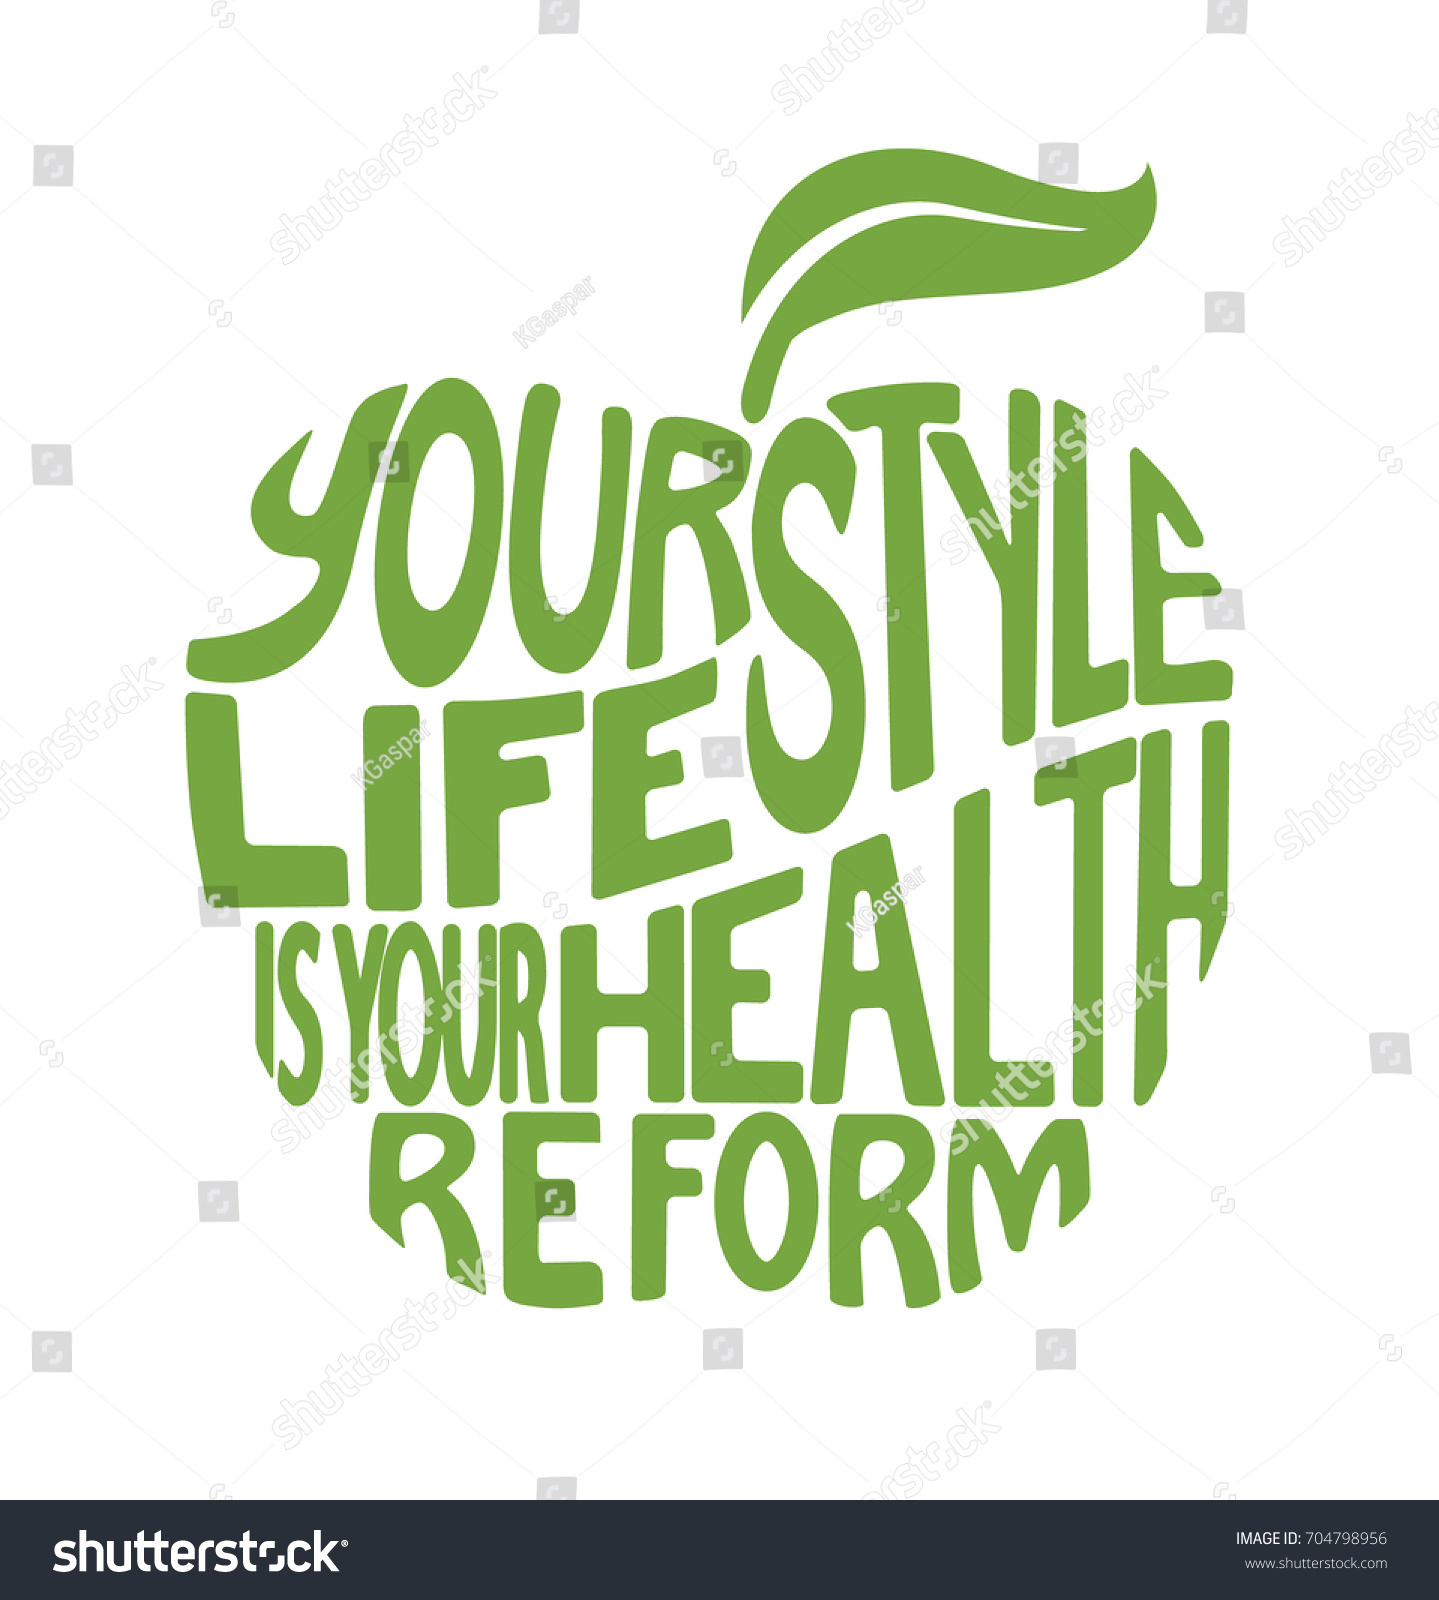 Health Quote Health Quote Design Form Apple Stock Vector 704798956  Shutterstock